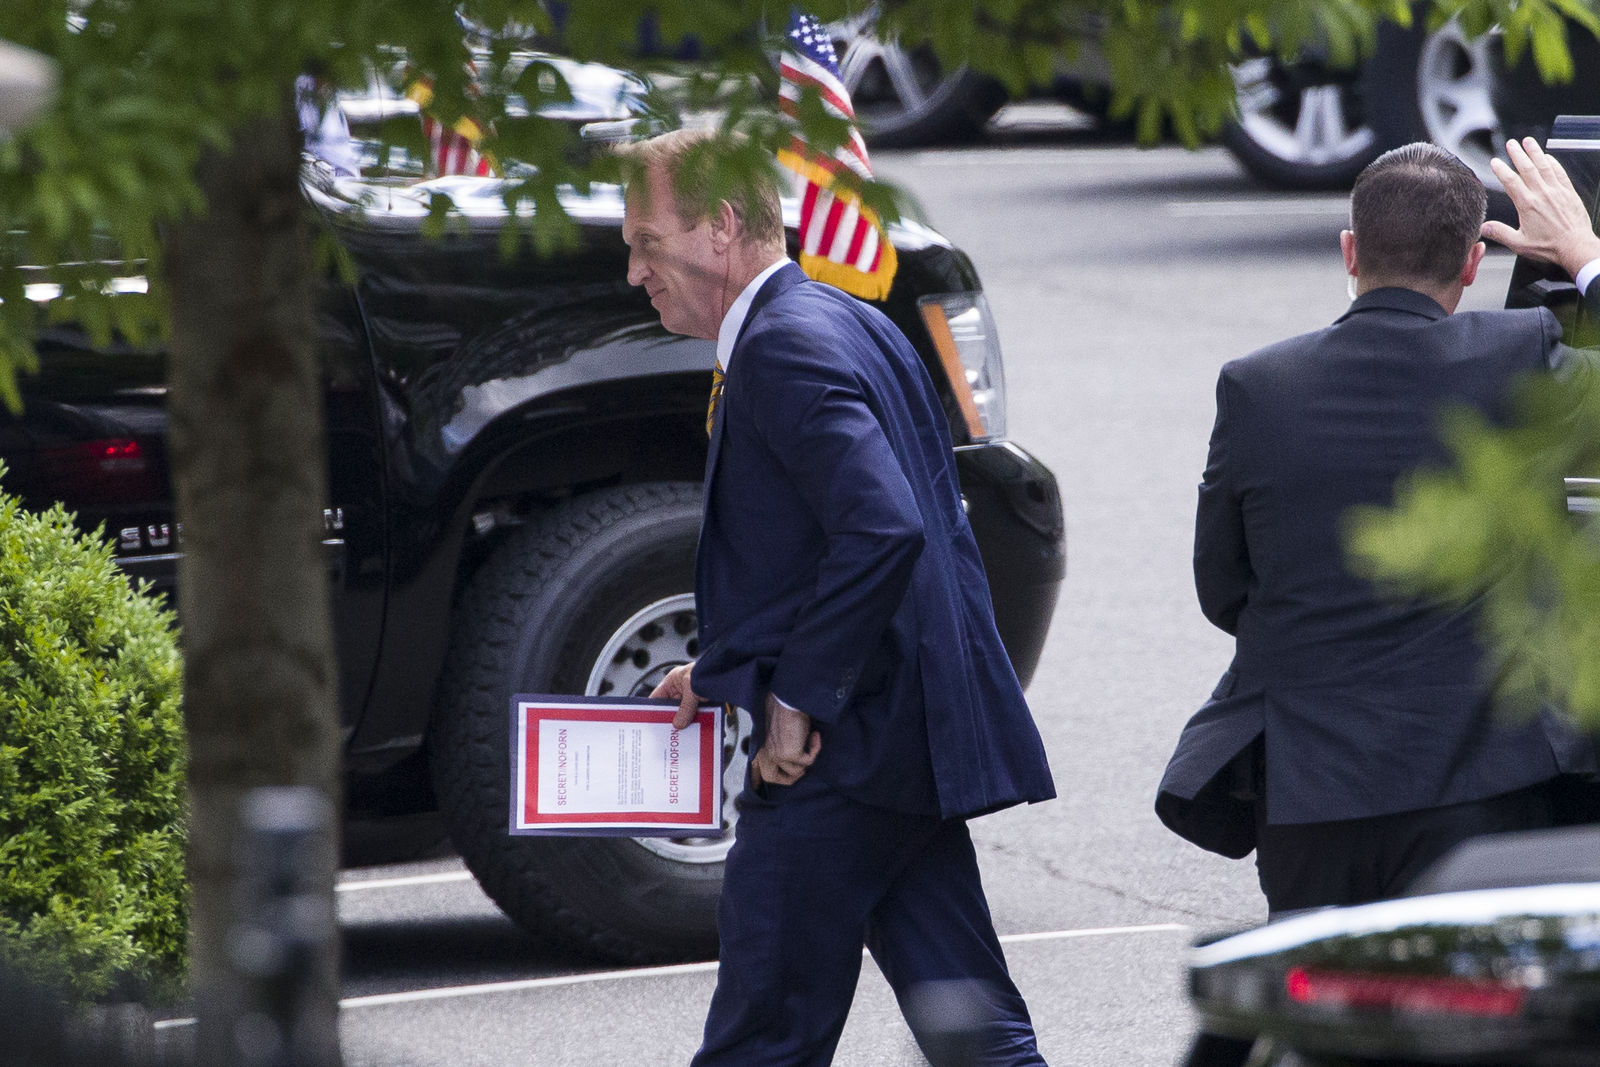 Outgoing acting Defense Secretary Patrick Shanahan arrives for a meeting with President Donald Trump about Iran carrying a folder marked secret, at the White House, Thursday, June 20, 2019, in Washington. (AP Photo/Alex Brandon)